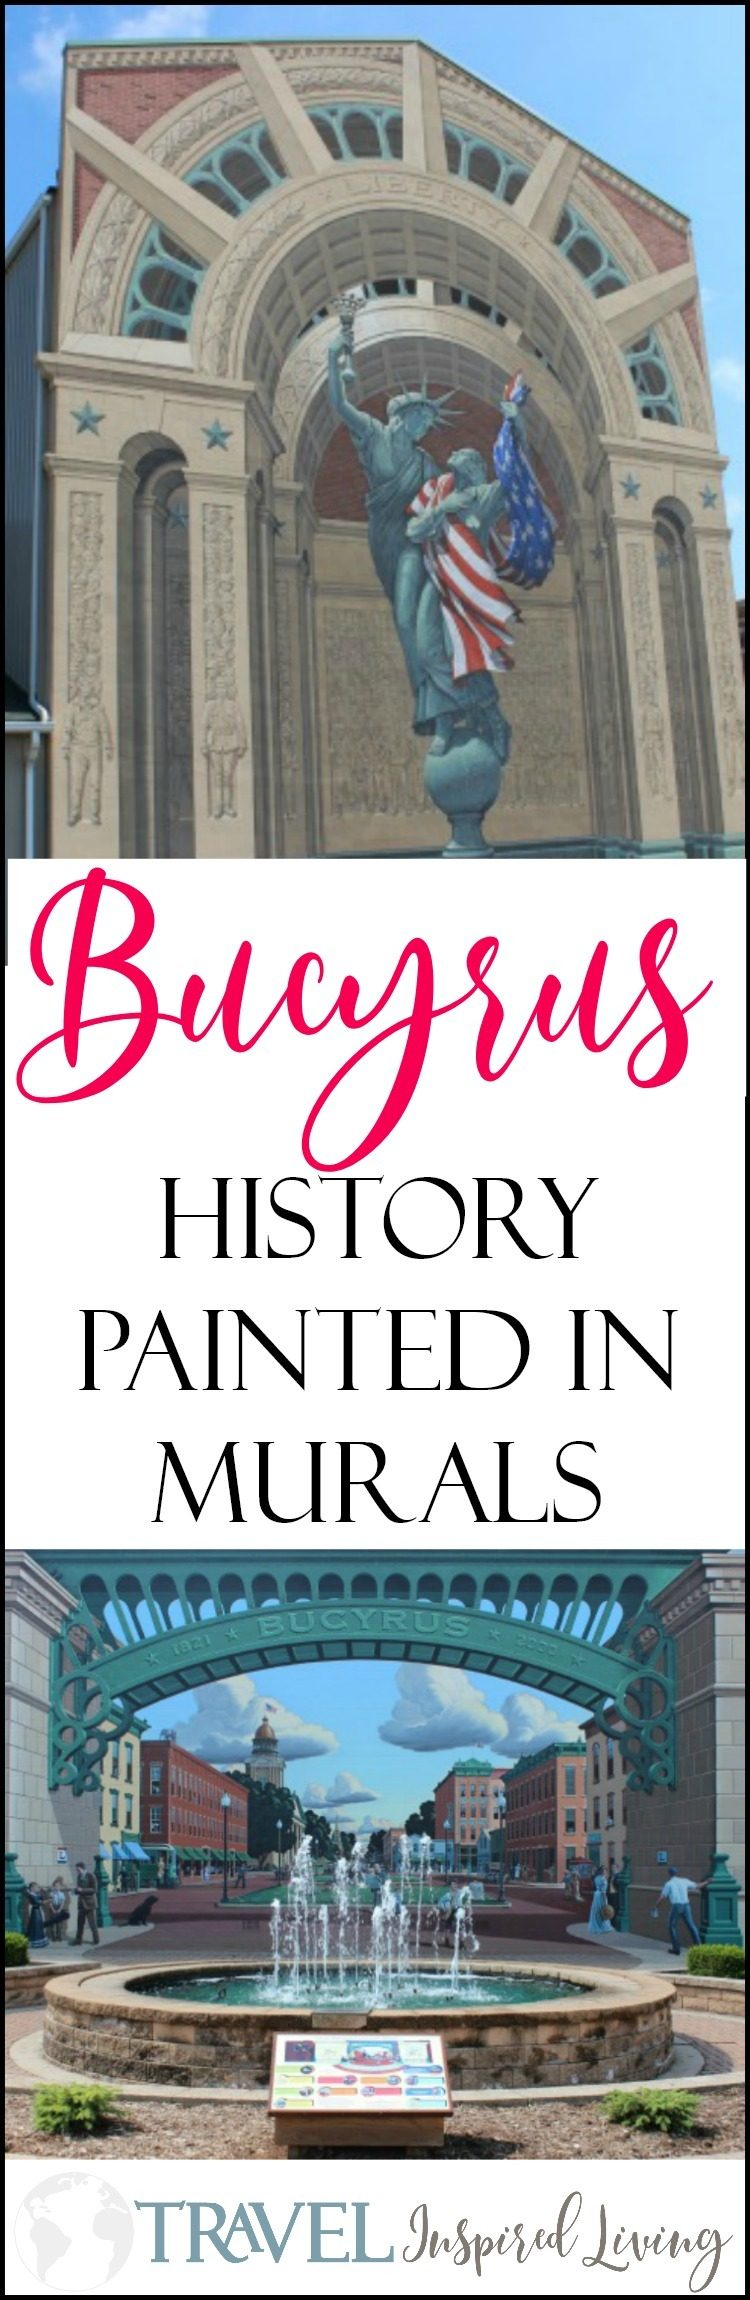 Those passing through Bucyrus, Ohio may notice two Eric Grohe murals, Great American Crossroad on the historic Lincoln Highway and Liberty Remembers, only a block away. The Bucyrus murals share the history of the community in a vivid display of color.